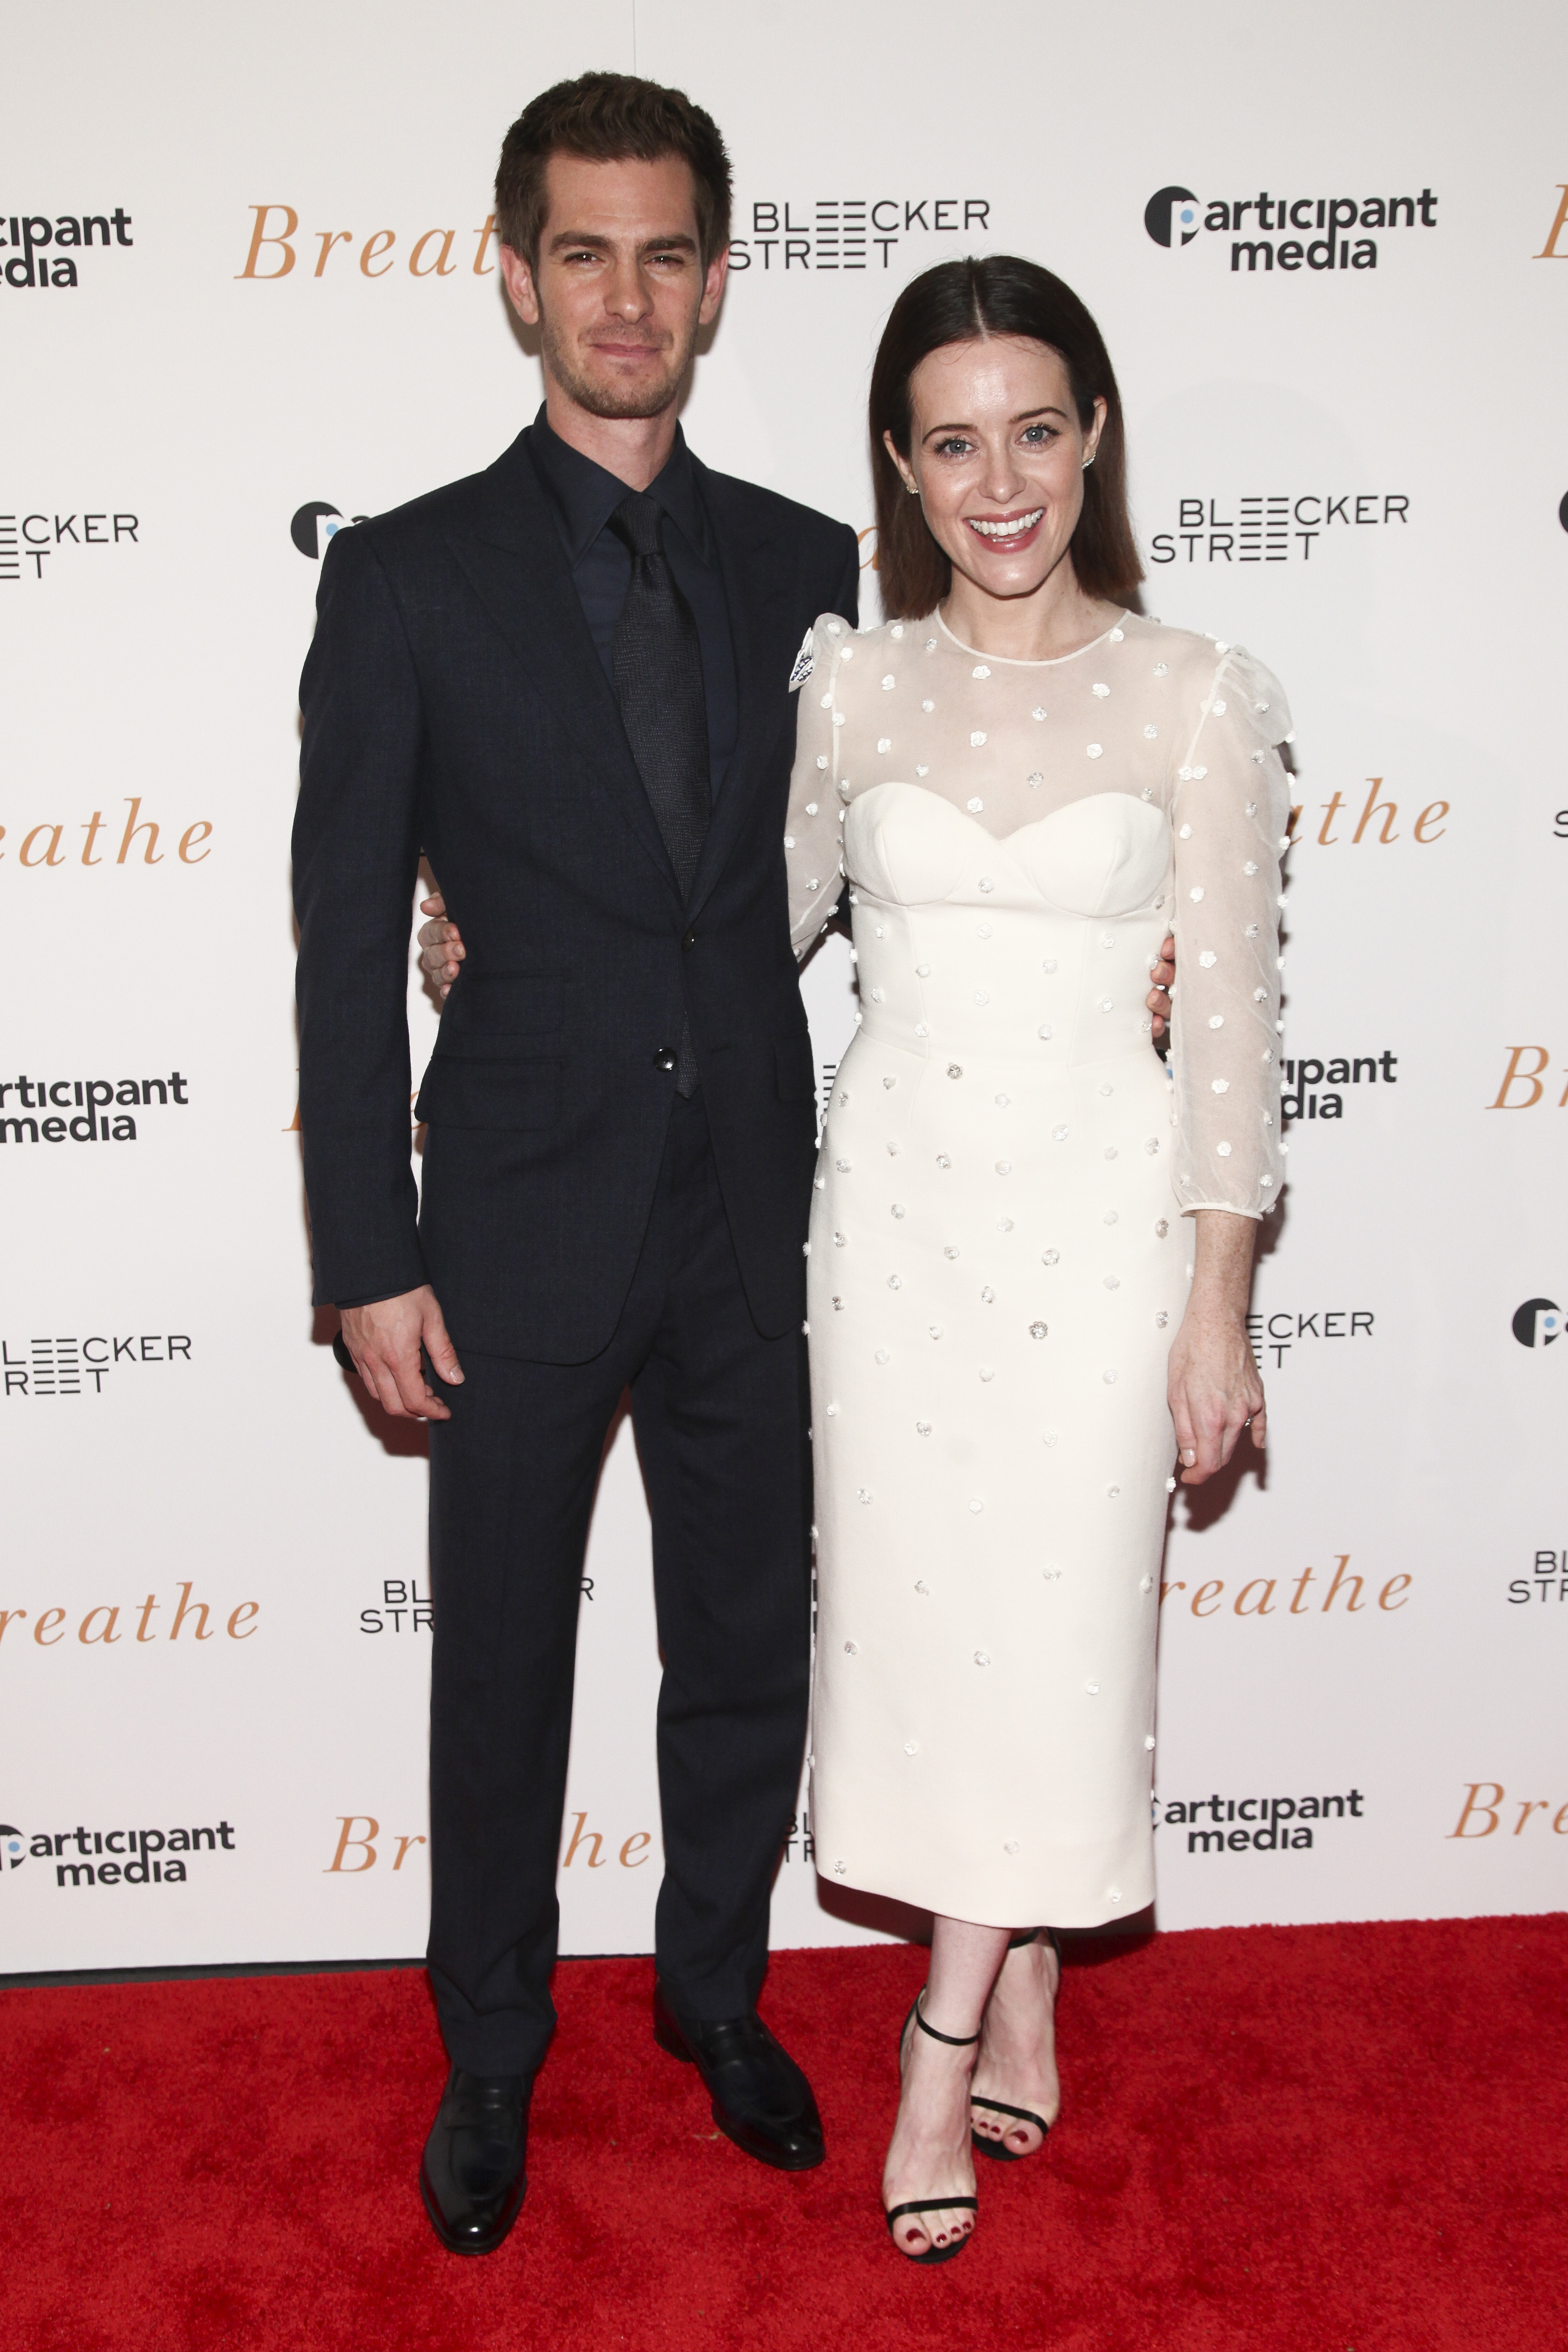 """Andrew Garfield, Claire Foy. Andrew Garfield, left, and Claire Foy, right, attend a special screening of """"Breathe"""" at AMC Loews Lincoln Square, in New YorkNY Special Screening of """"Breathe"""", New York, USA - 09 Oct 2017"""